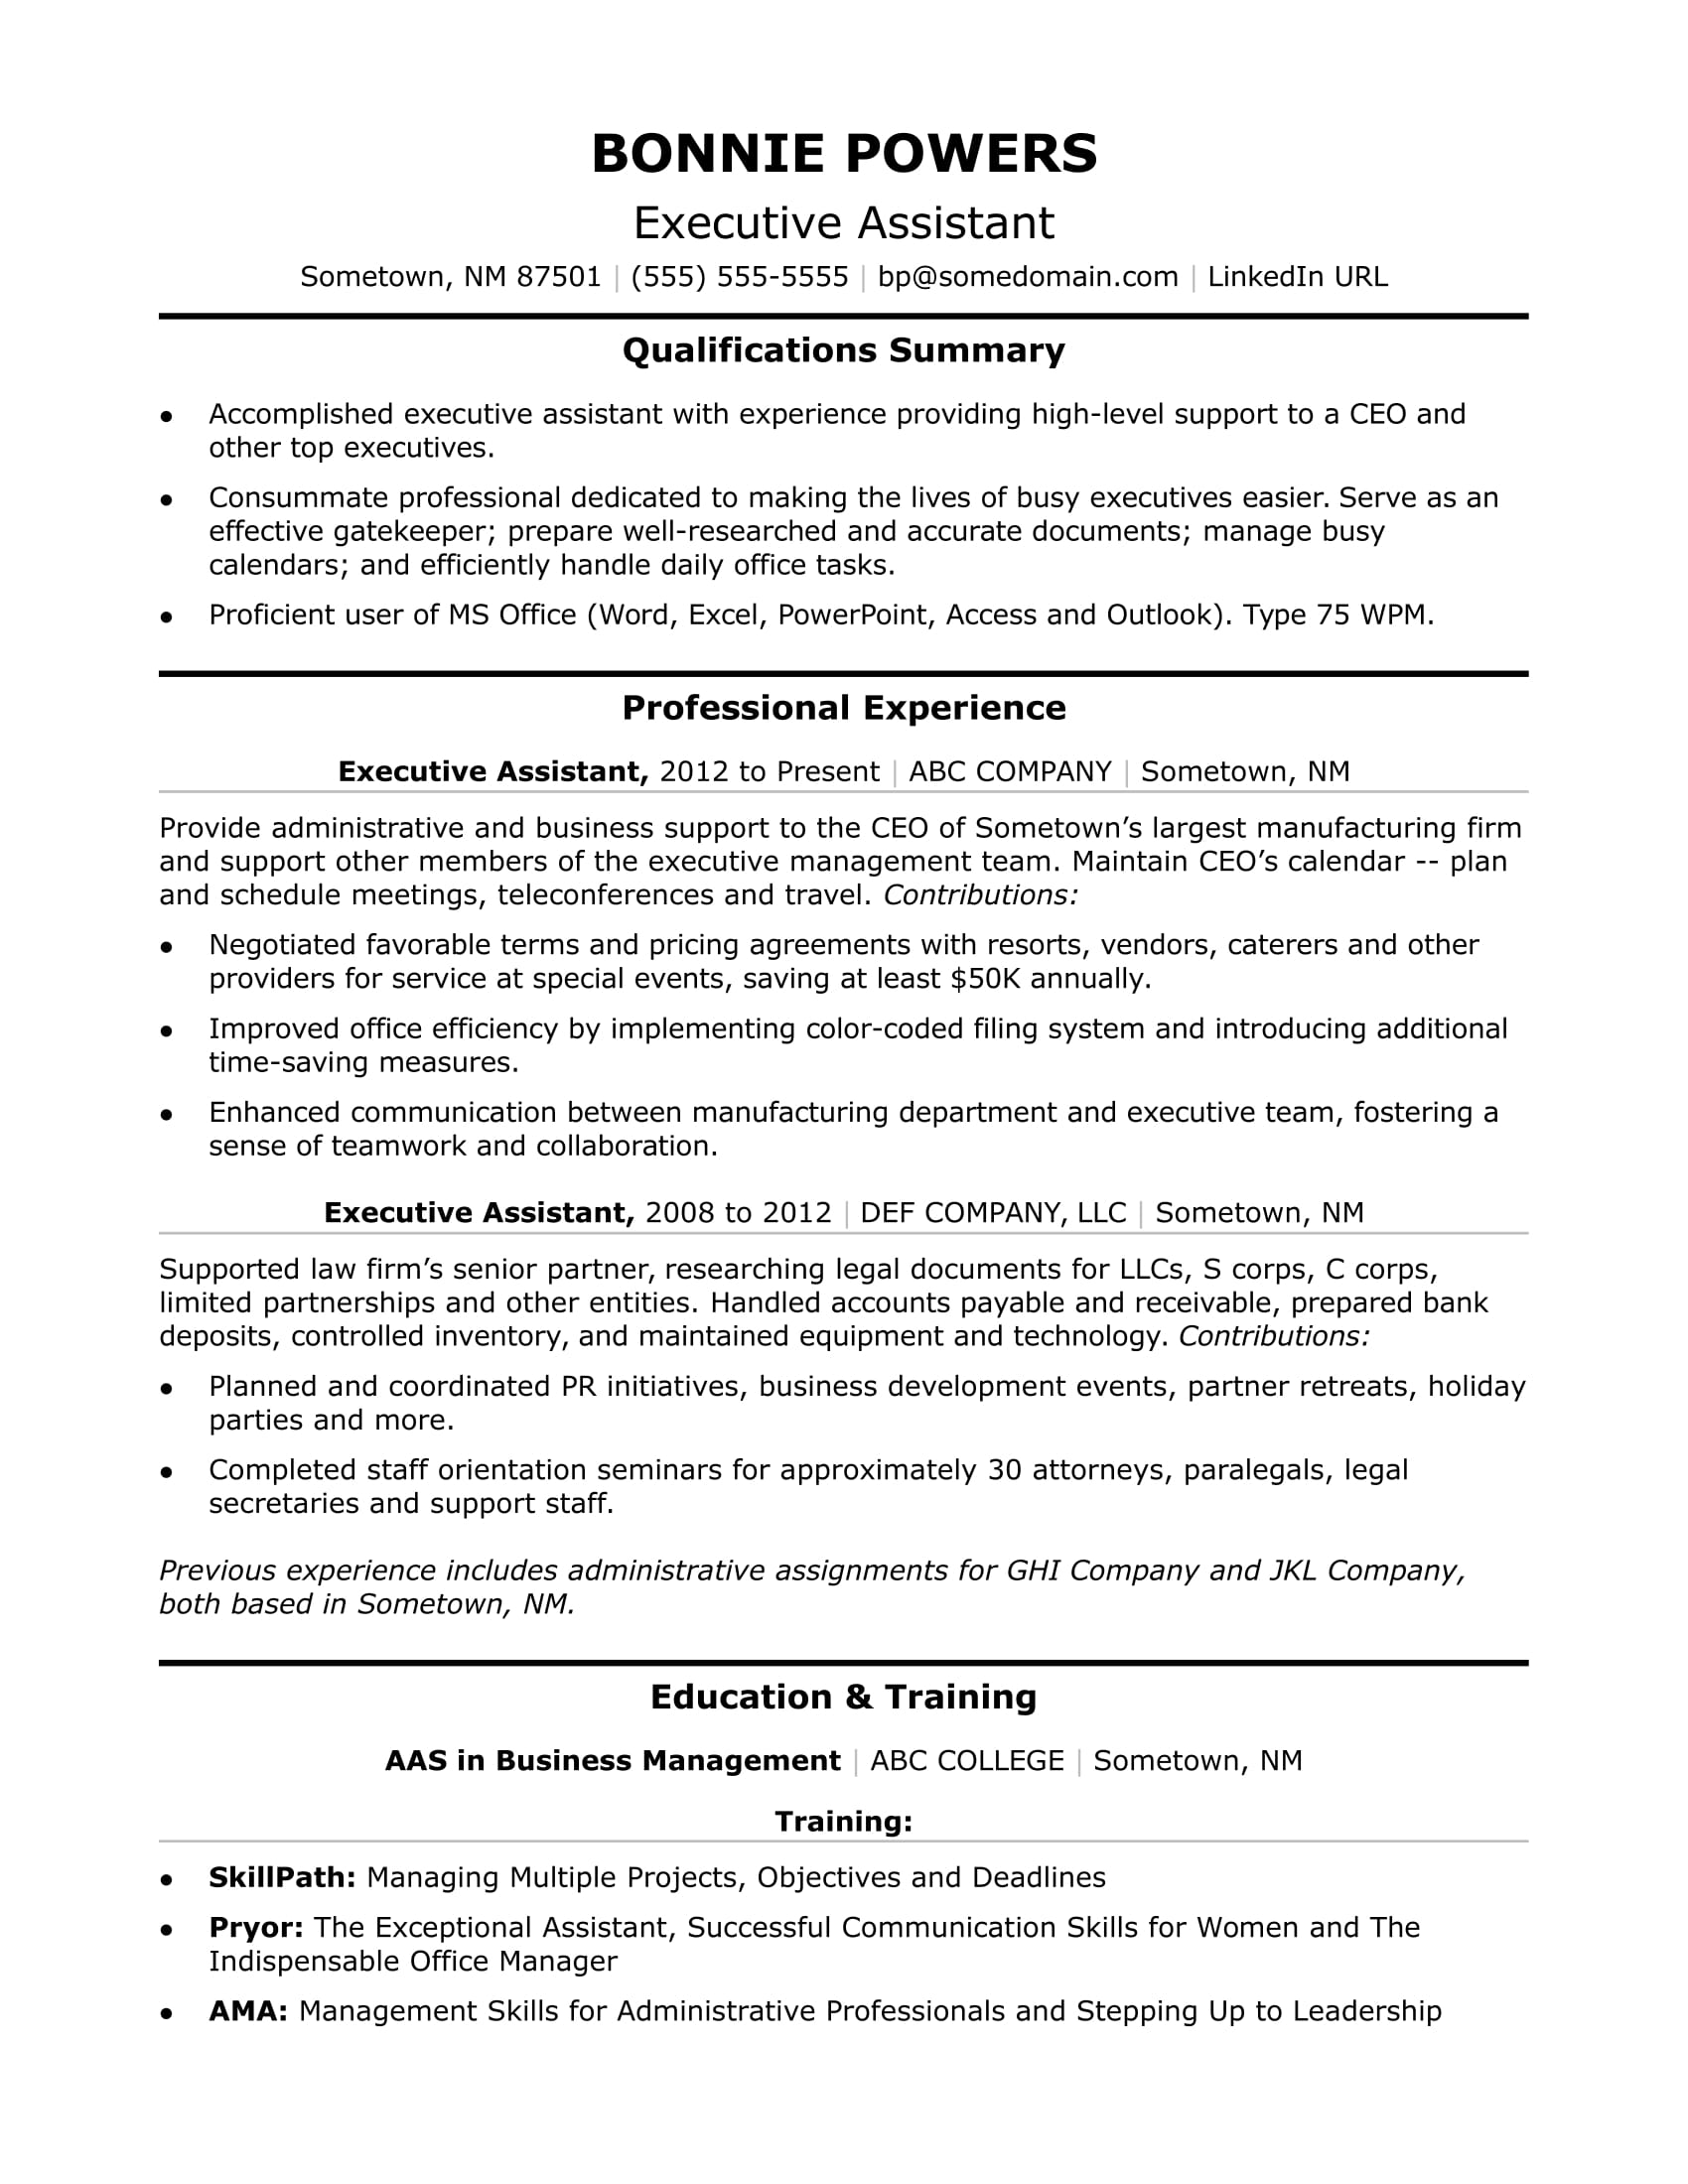 Executive Administrative Assistant Resume Sample  Manufacturing Resume Samples